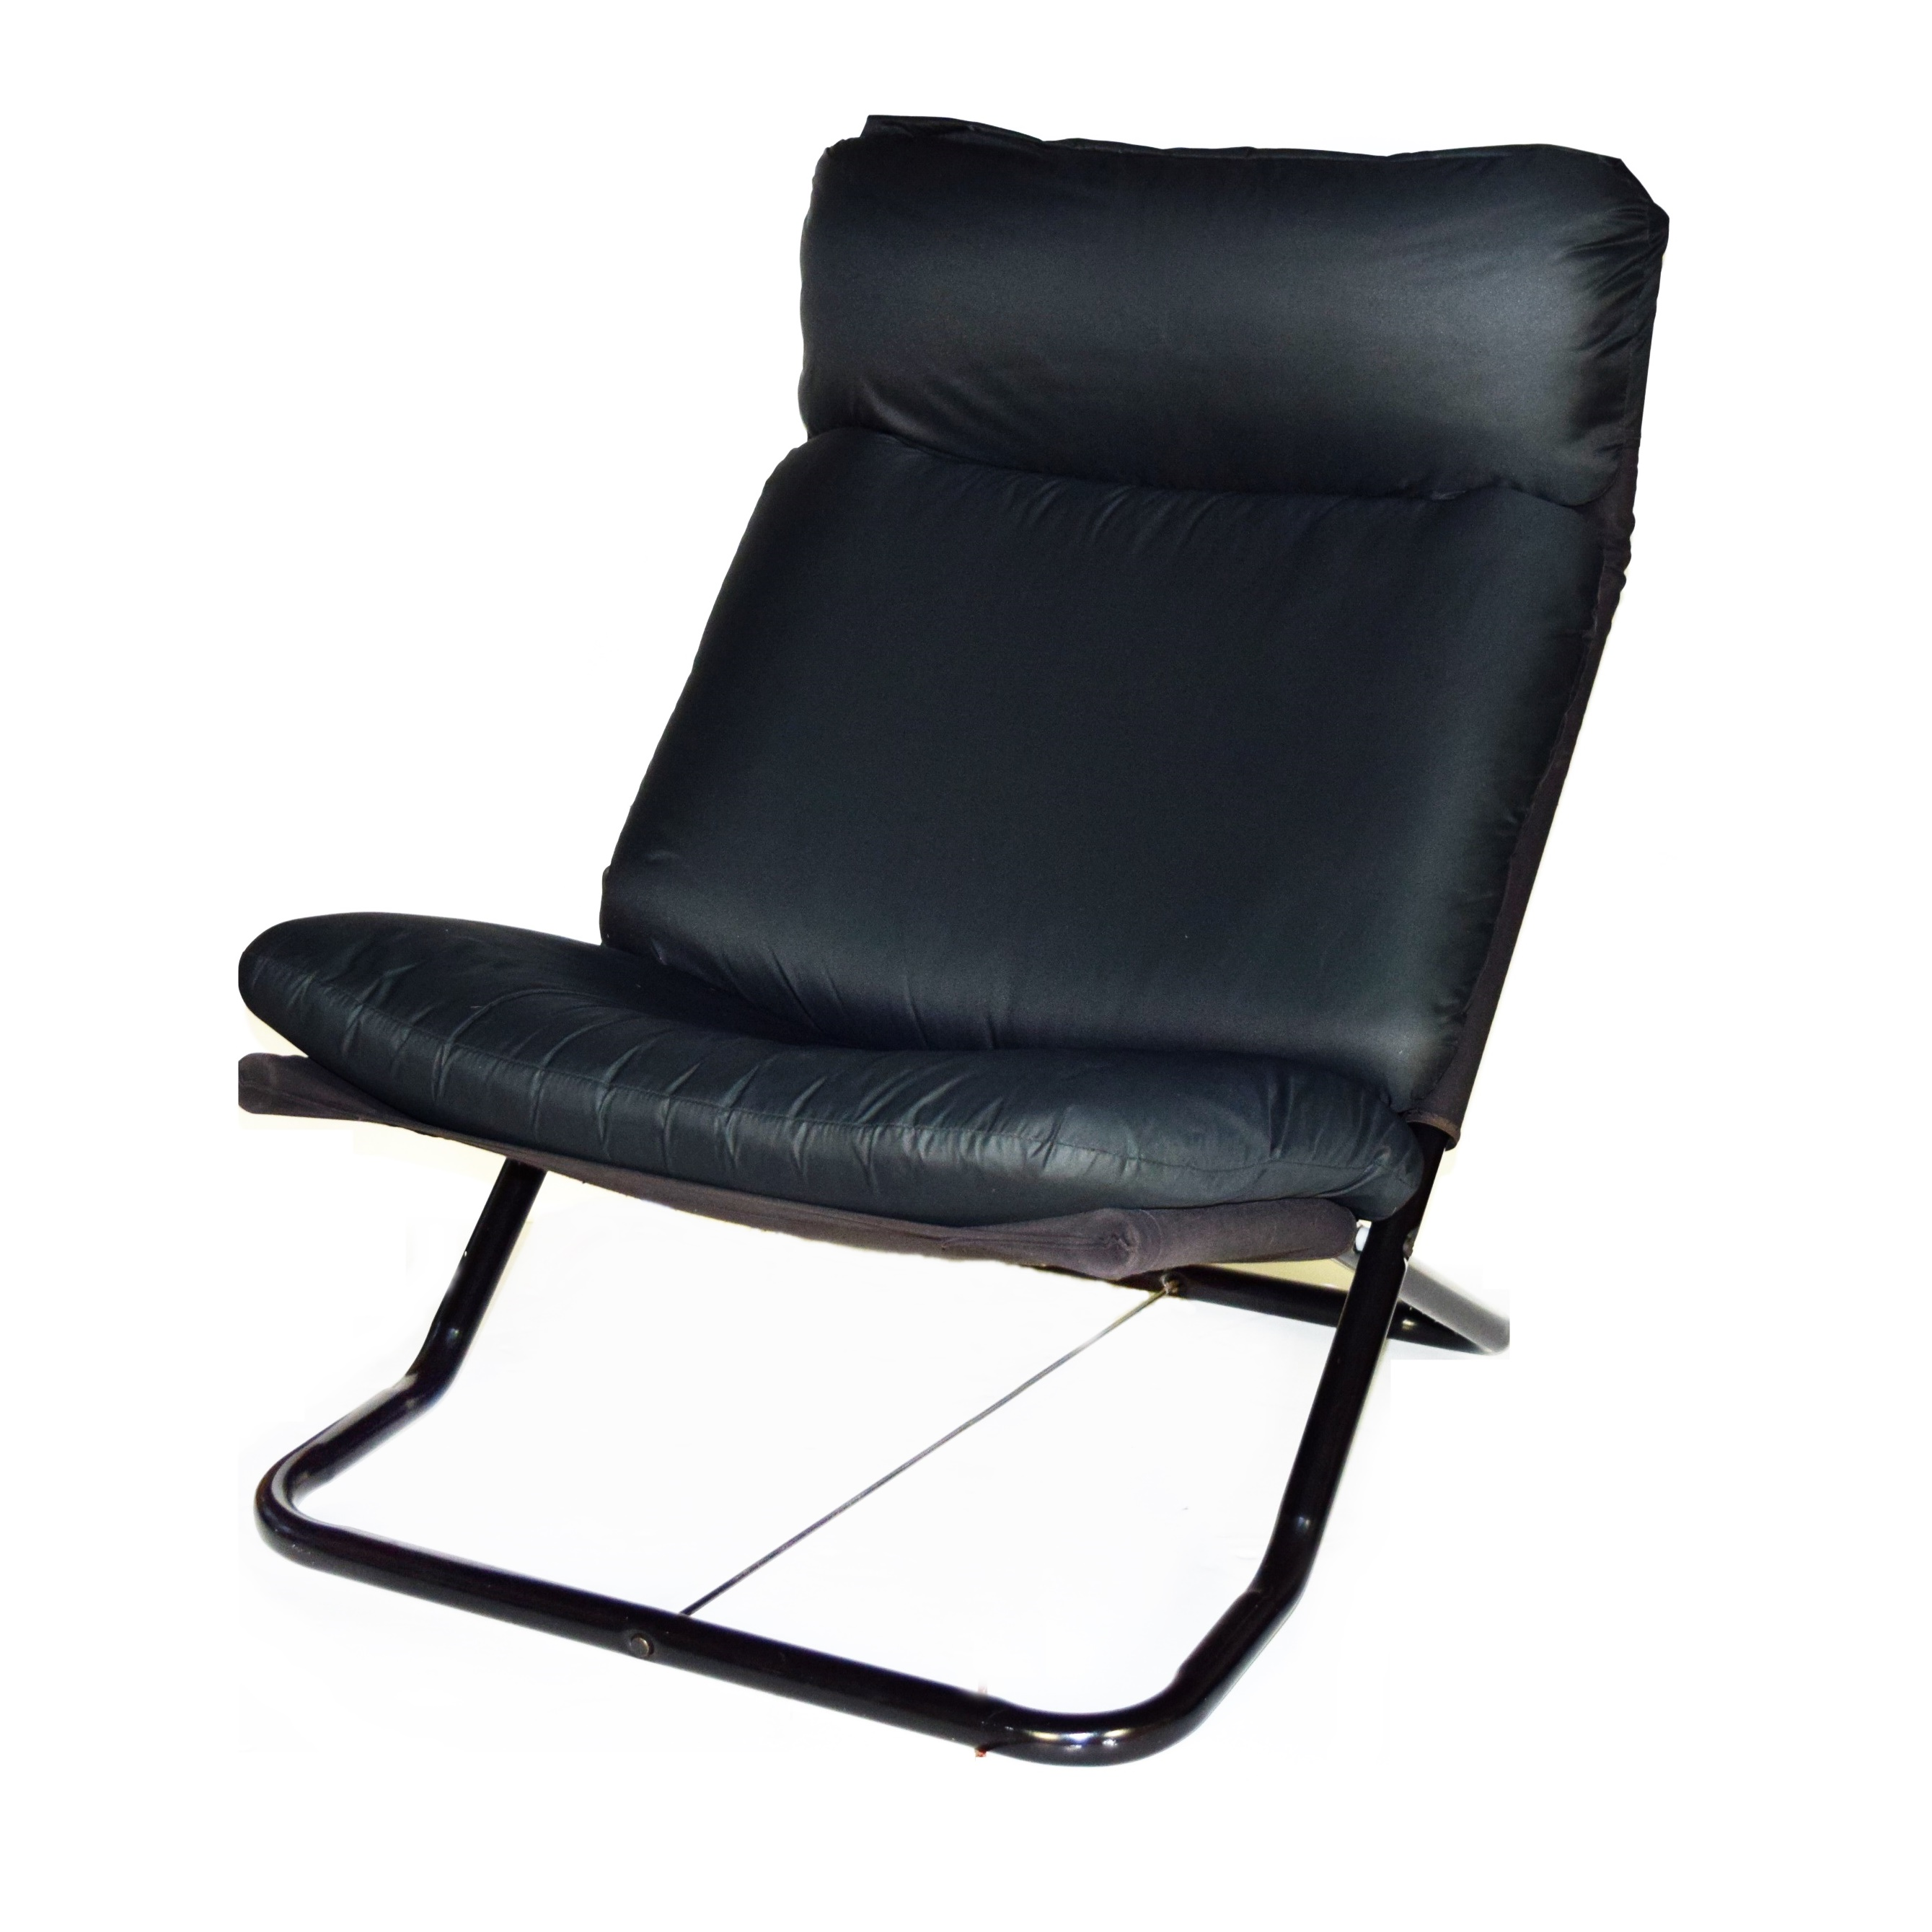 cushions for metal folding chairs red leather counter contemporary black frame chair with